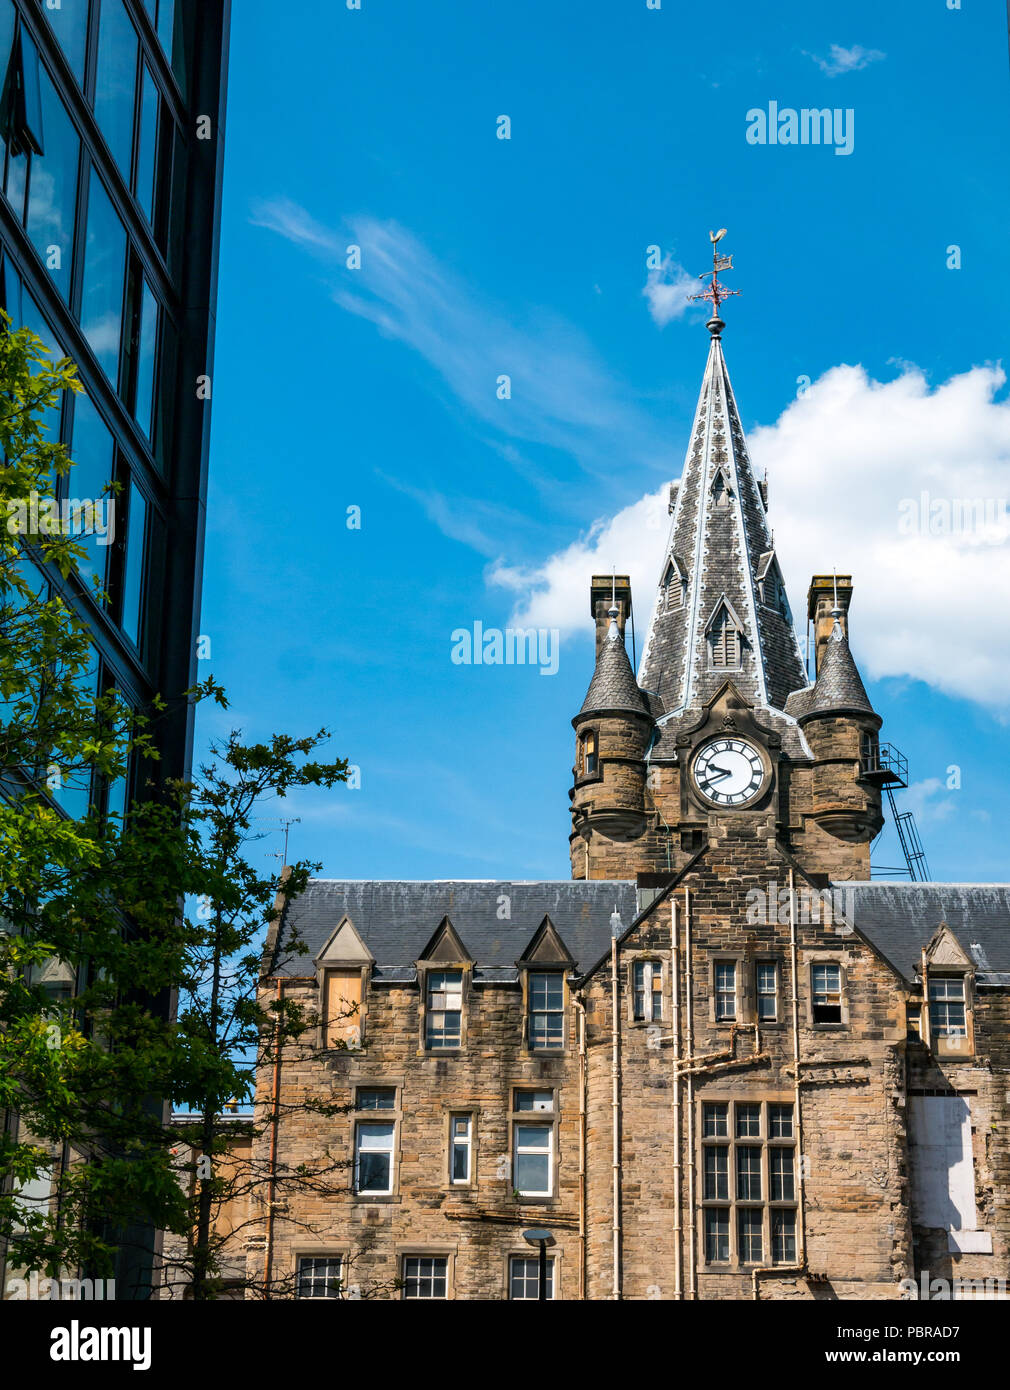 Old and new buildings at Quartermile conversion of former Royal Infirmary, with Gothic clock tower, Edinburgh, Scotland, UK - Stock Image